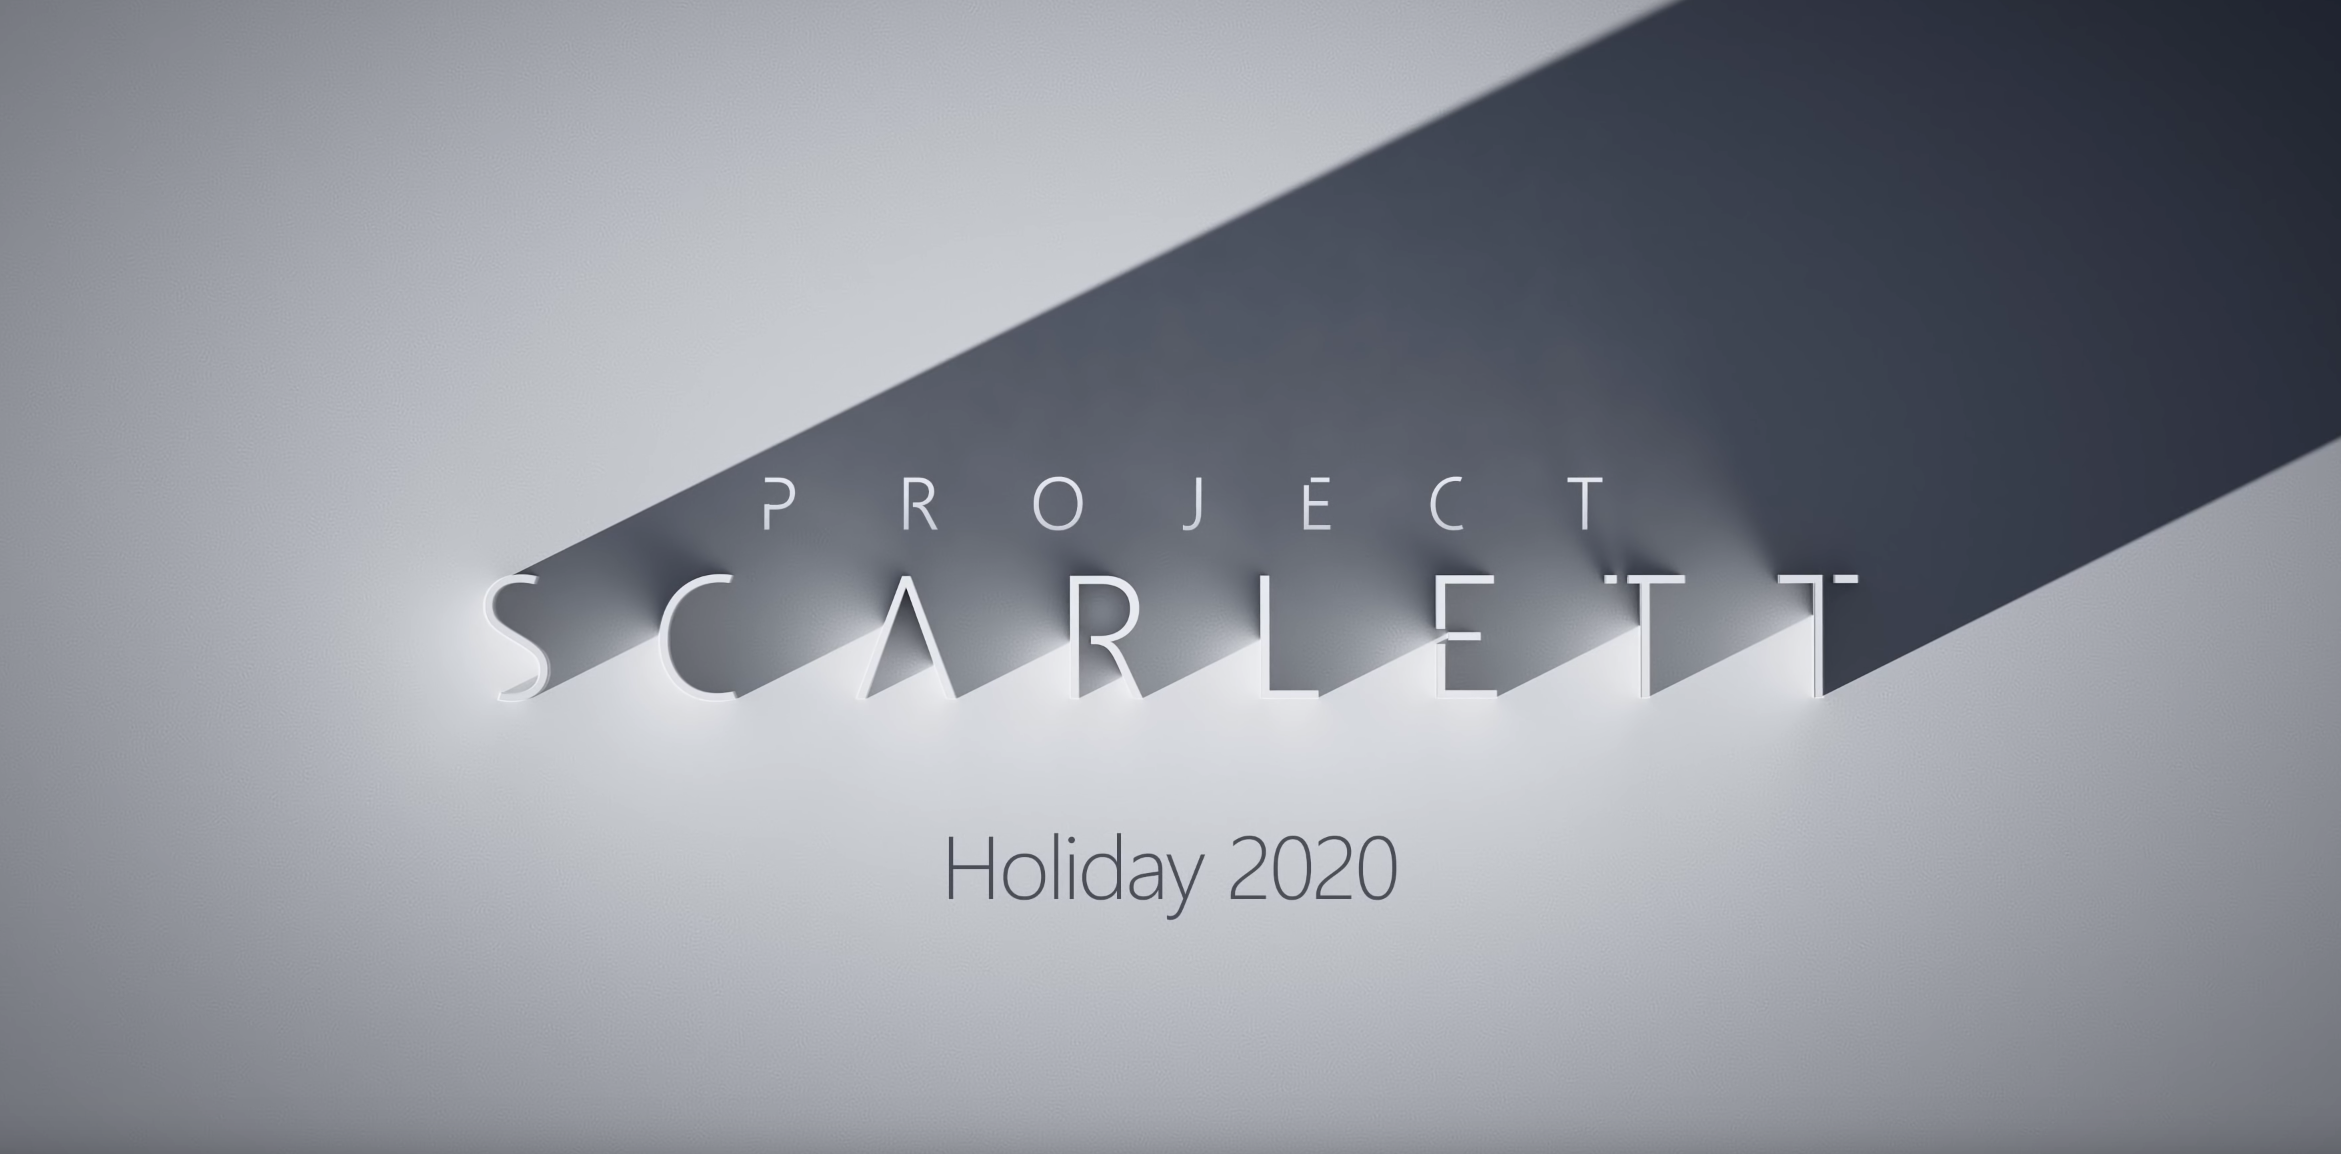 Project Scarlett, Next-gen console